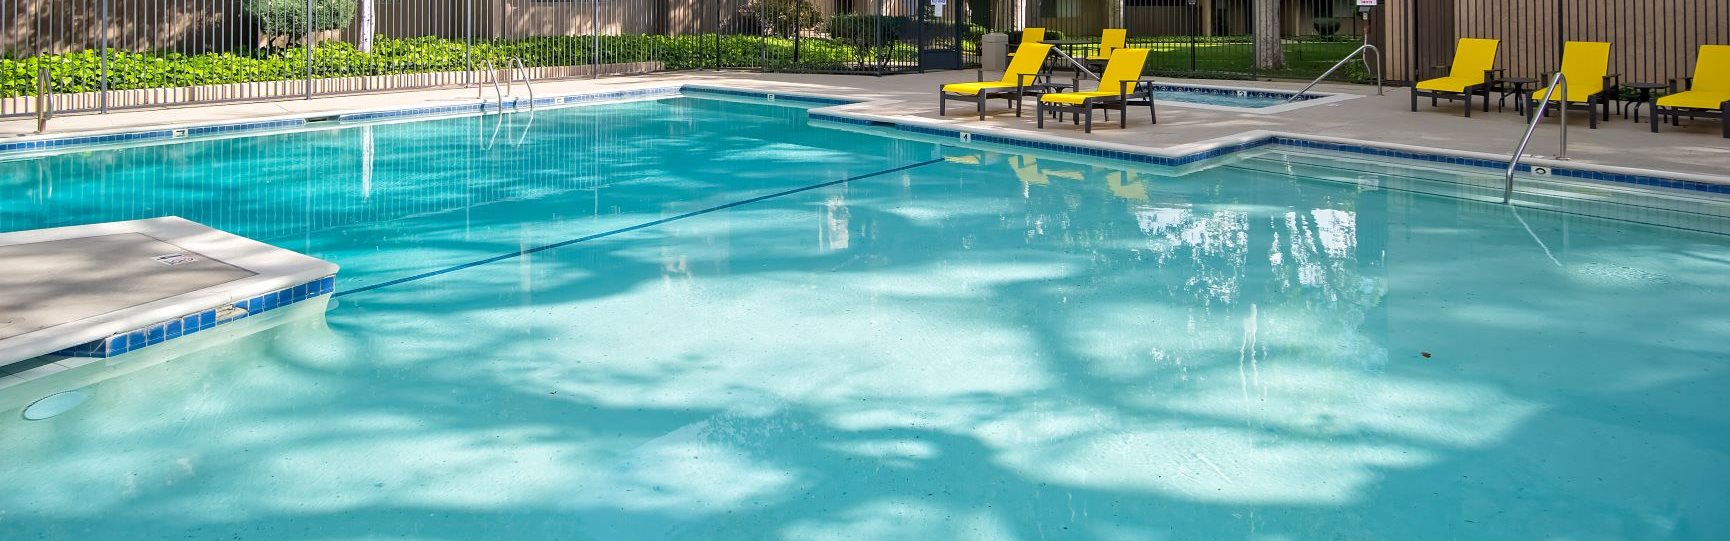 Swimming Pool And Relaxing Area at Wilbur Oaks Apartments, Thousand Oaks, California